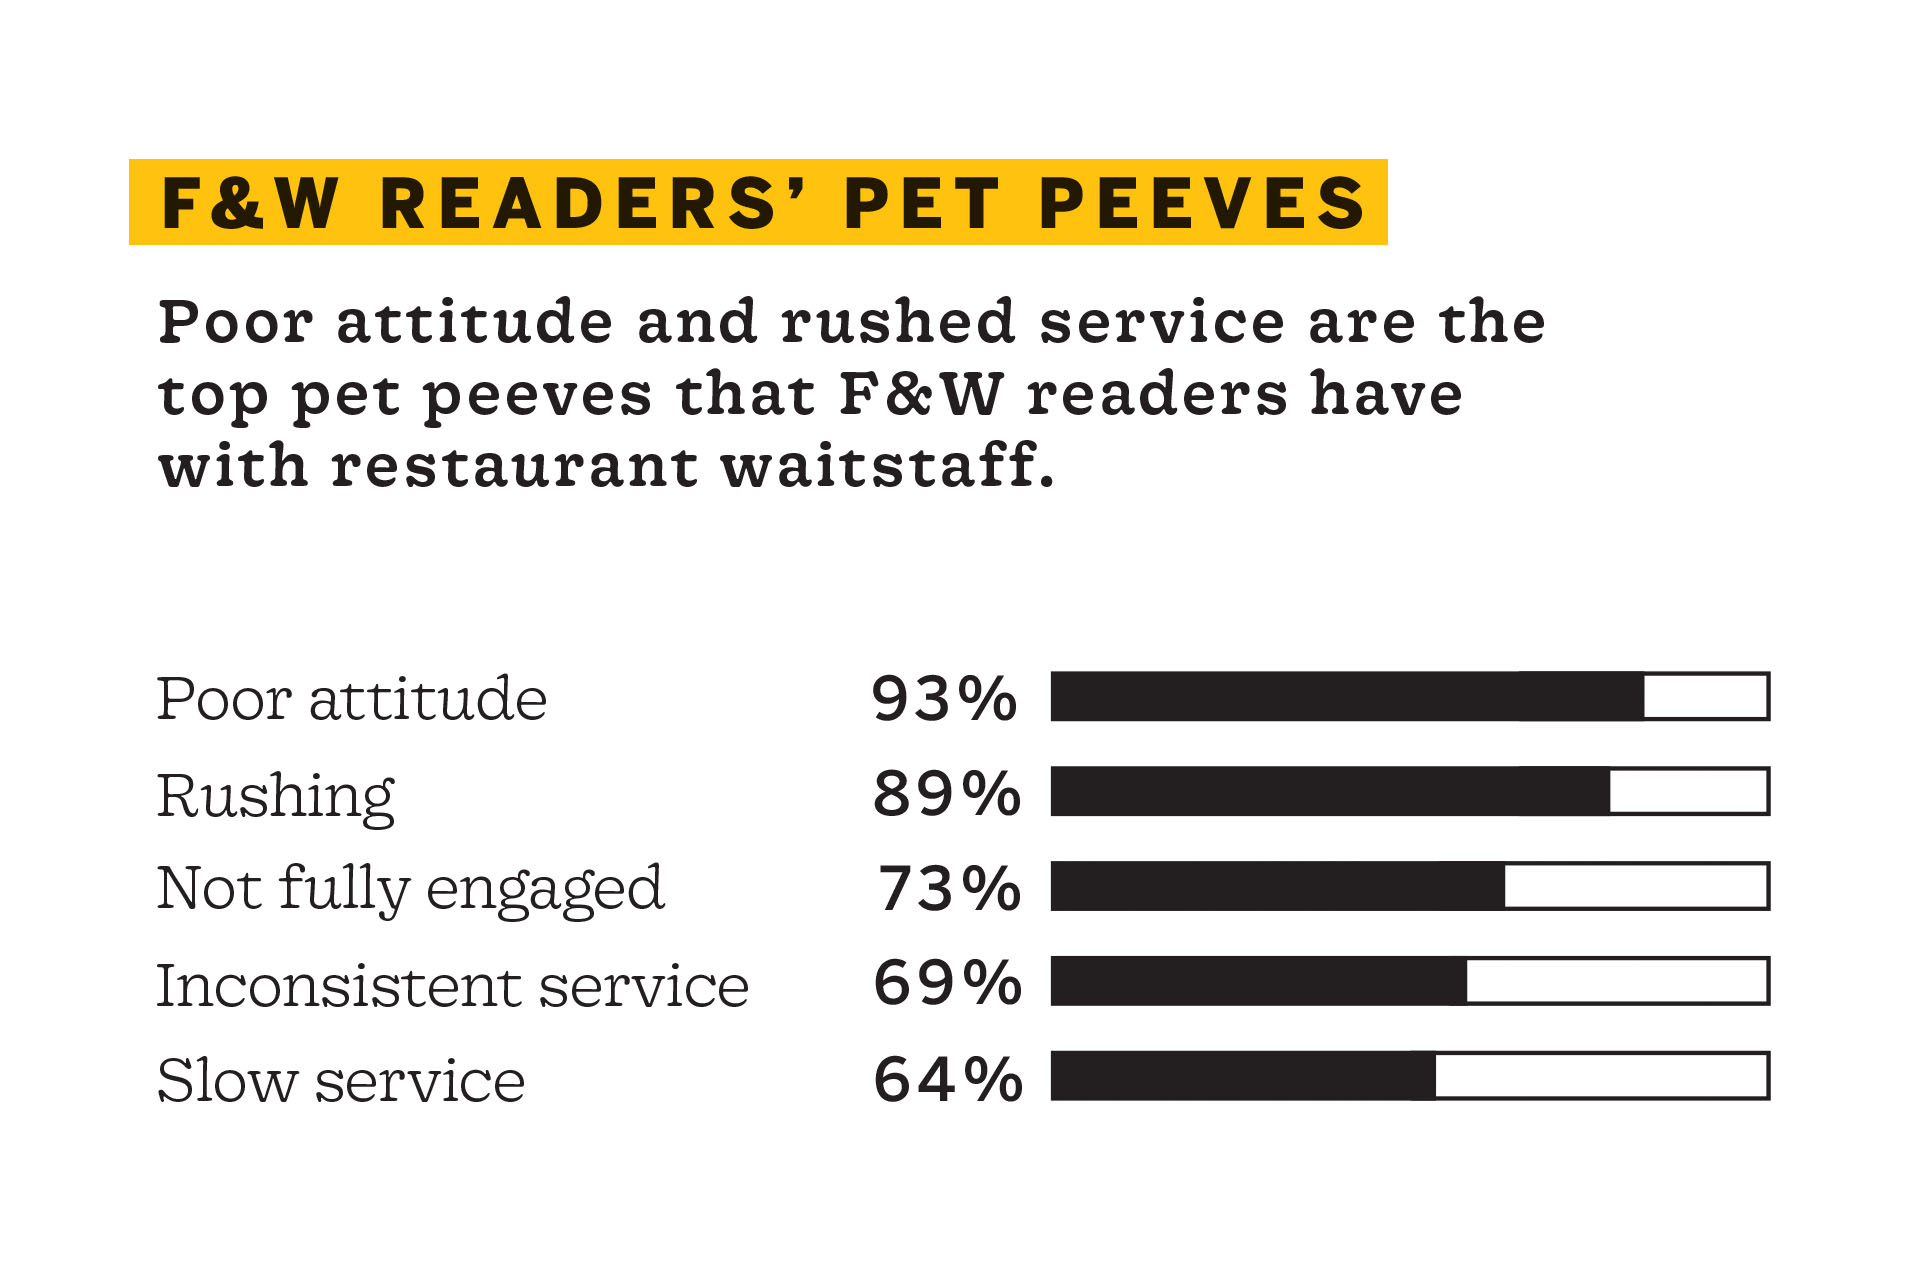 """Infographic titled """"F&W Readers' Pet Peeves"""" that shows a bar graph of: 93% poor attitude, 89% rushing, 73% not fully engaged, 69% inconsistent service, and 64% slow service"""